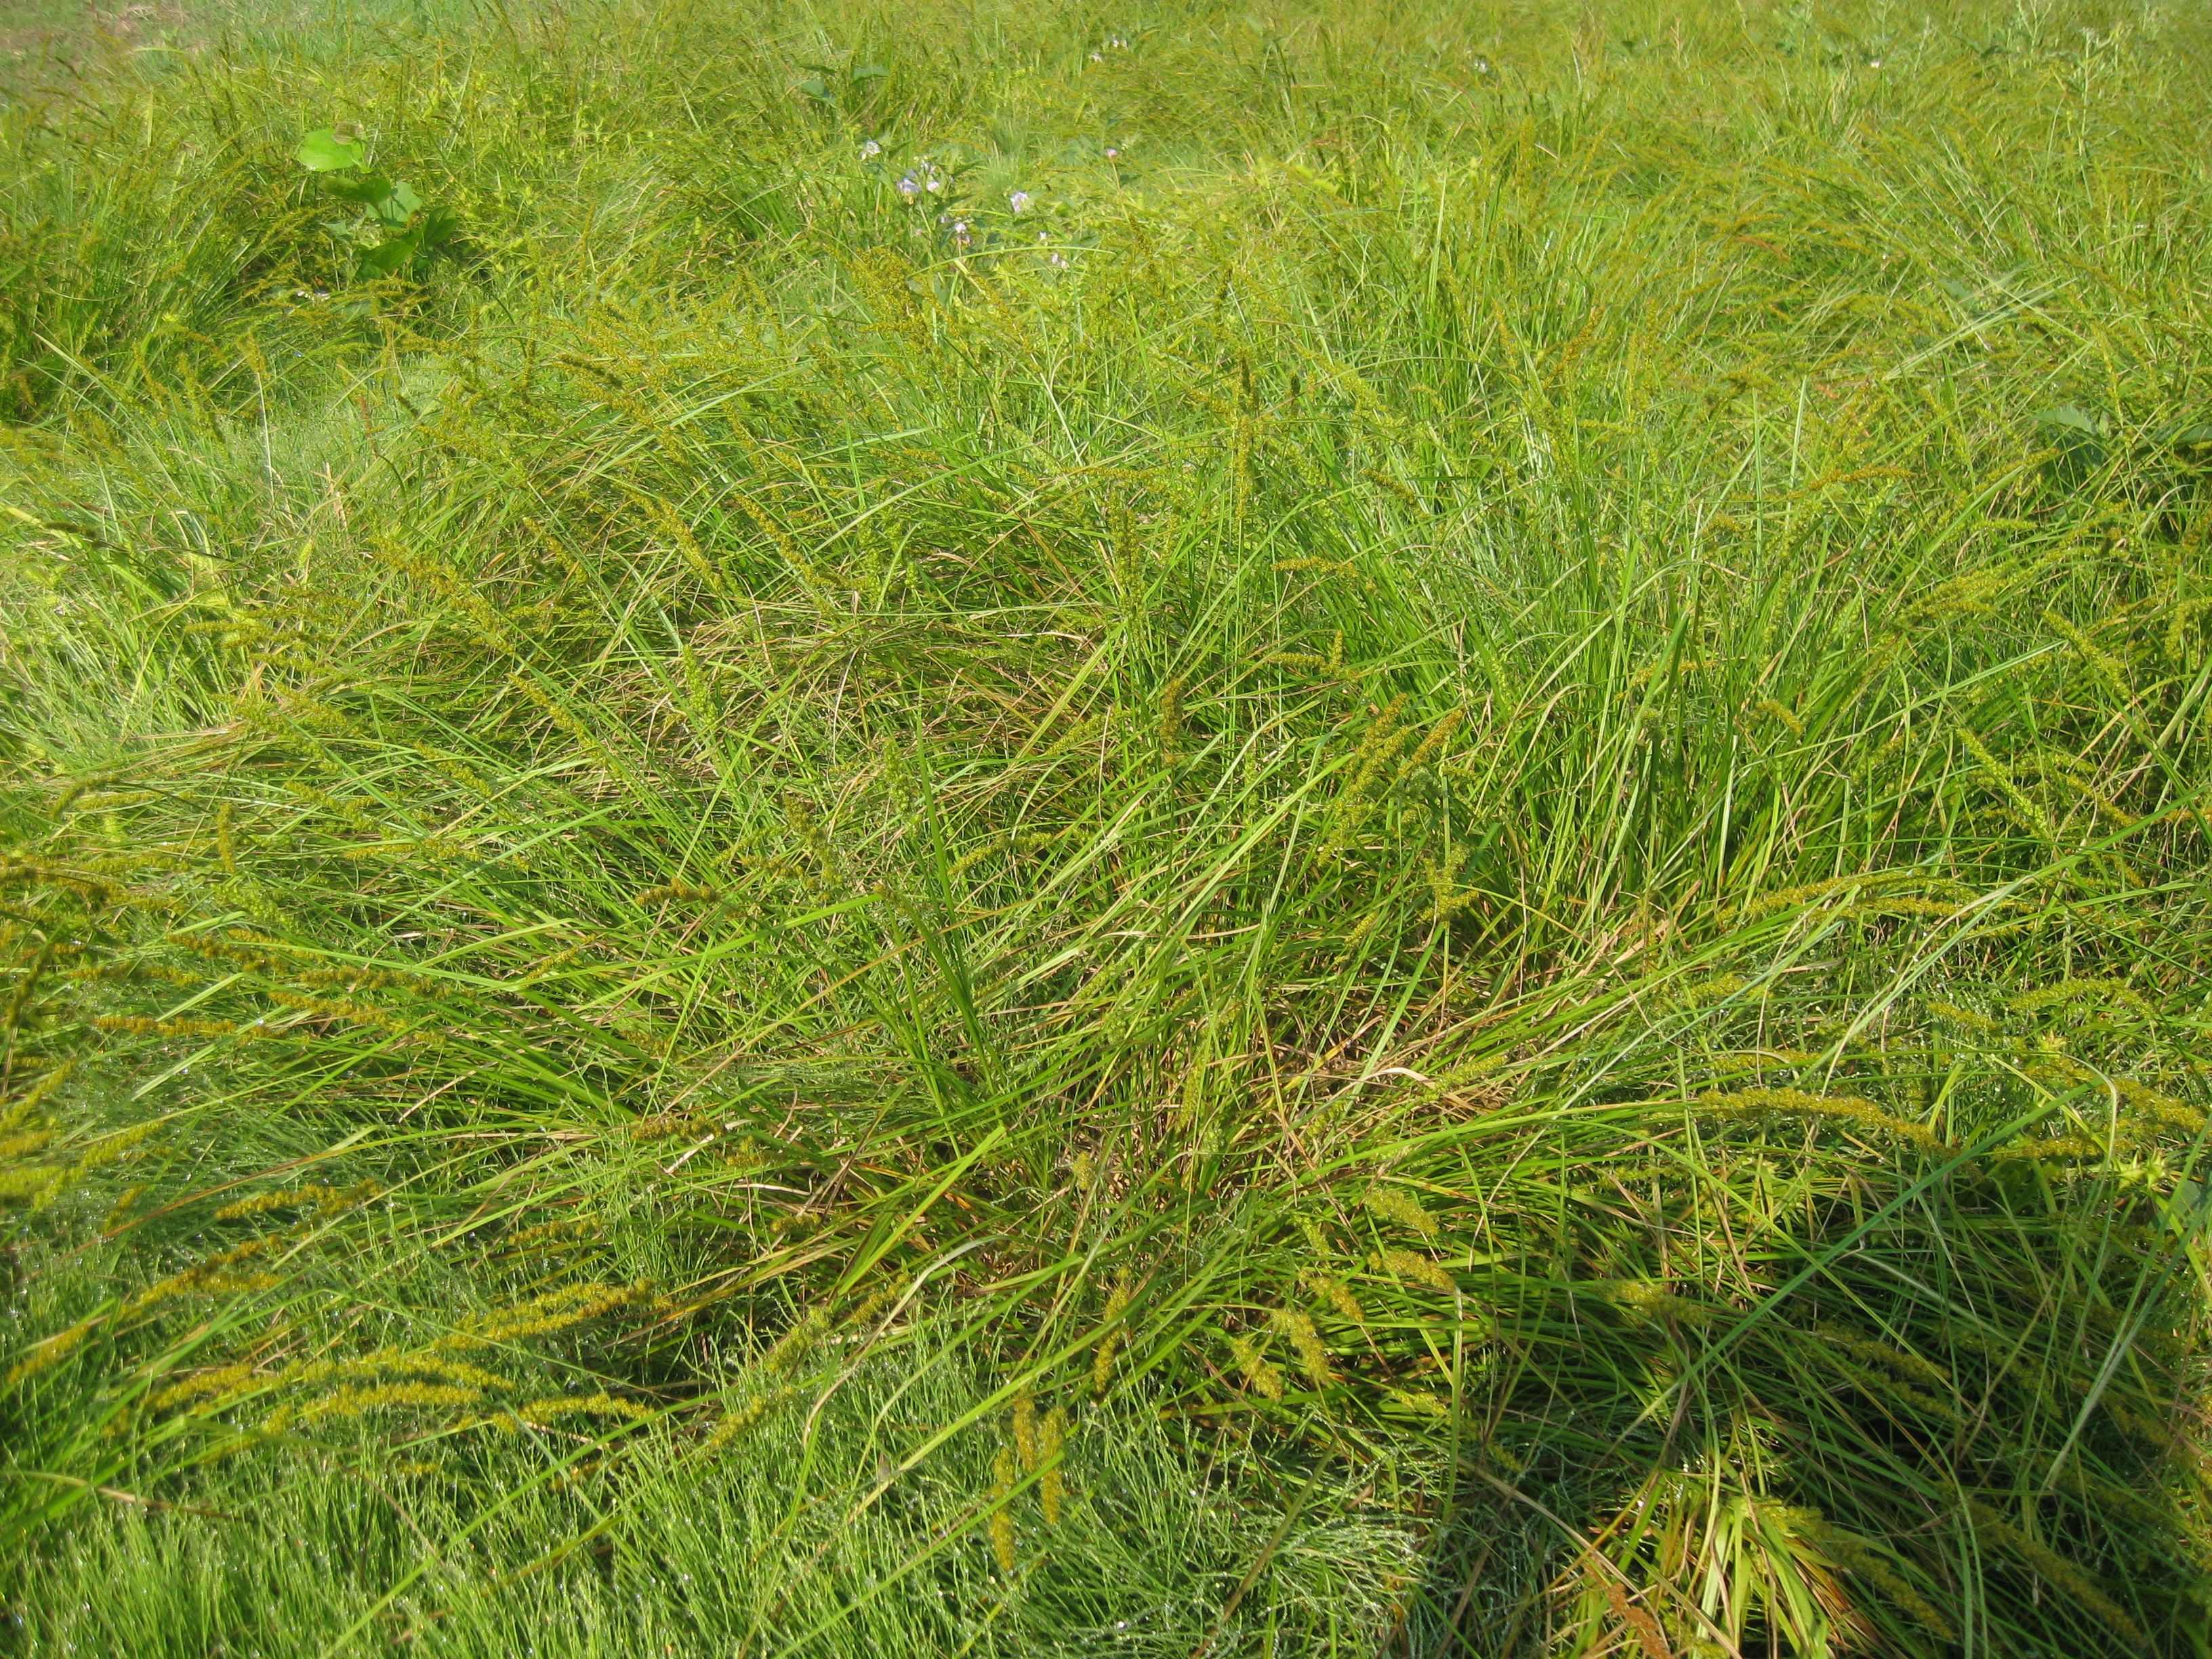 Carex Vulpinoidea Obl Is A Wetland Sedge Commonly Seen In Wet Meadows Swamps And Other Moist Areas Fox Sedge Is A Low Maint Wetland Erosion Control Shrubs